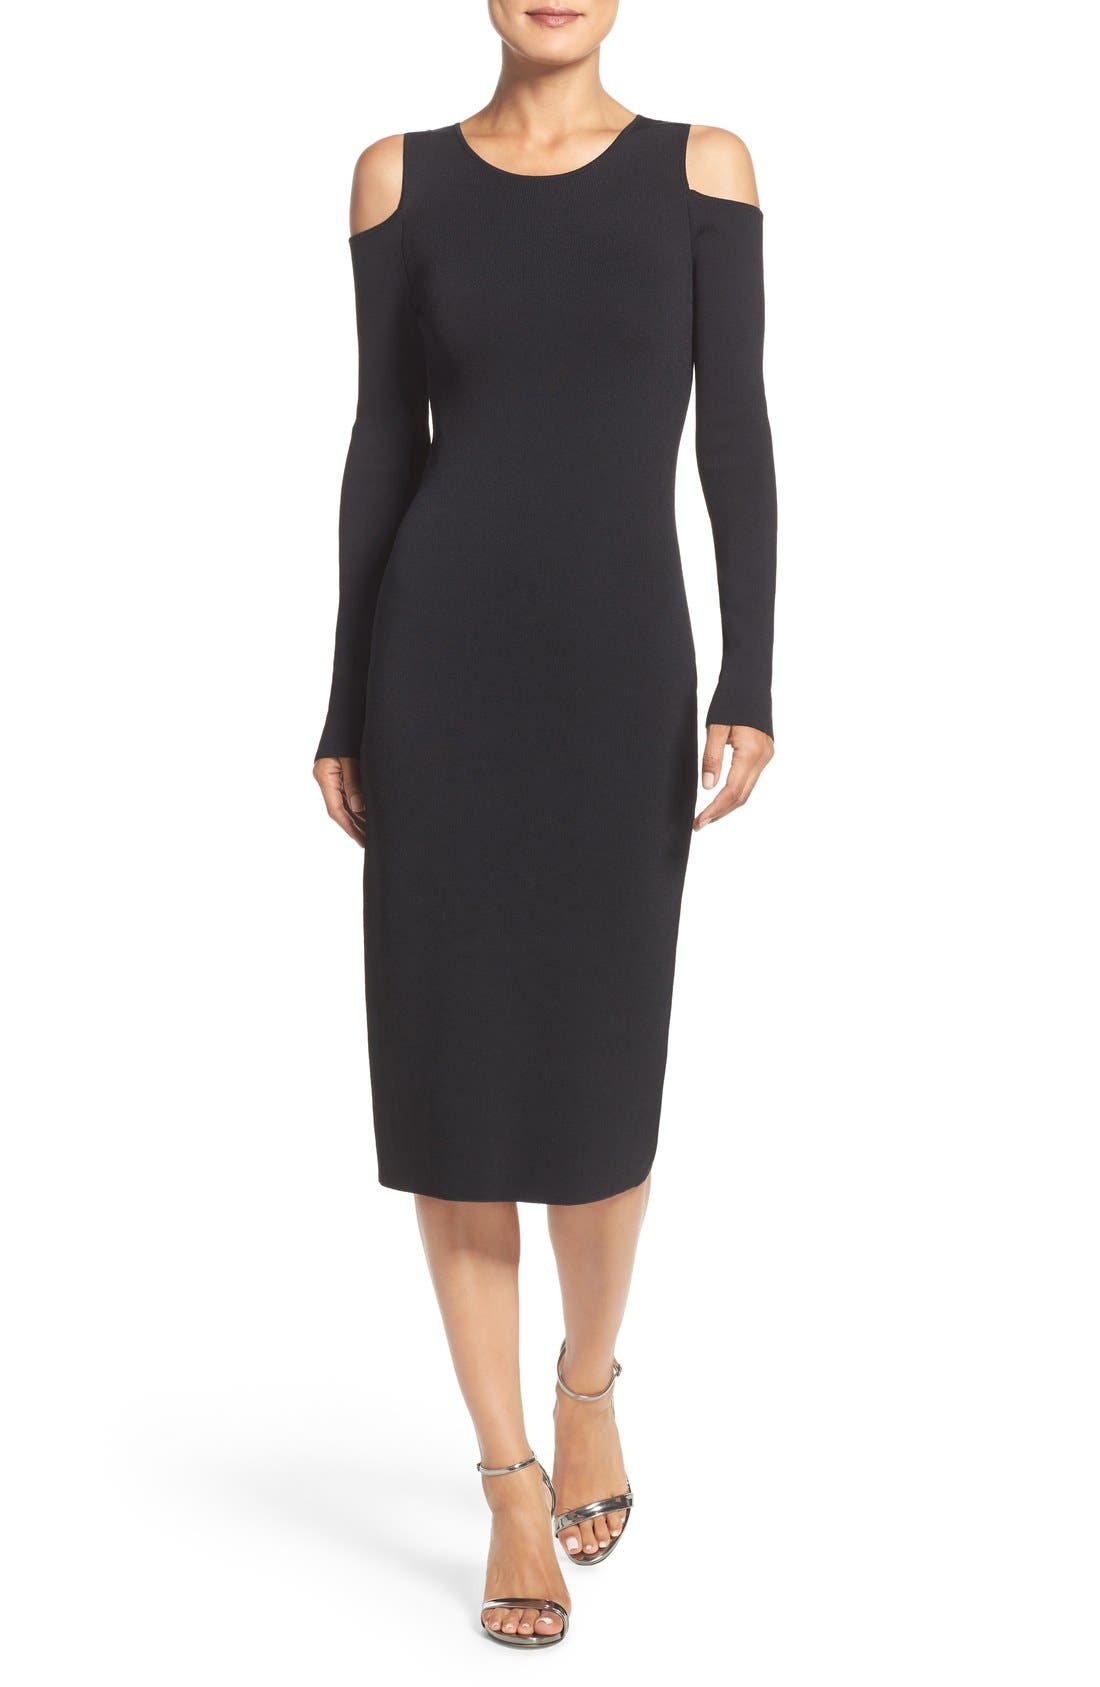 Main Image - Eliza J Cold Shoulder Knit Body-Con Dress (Regular & Petite)